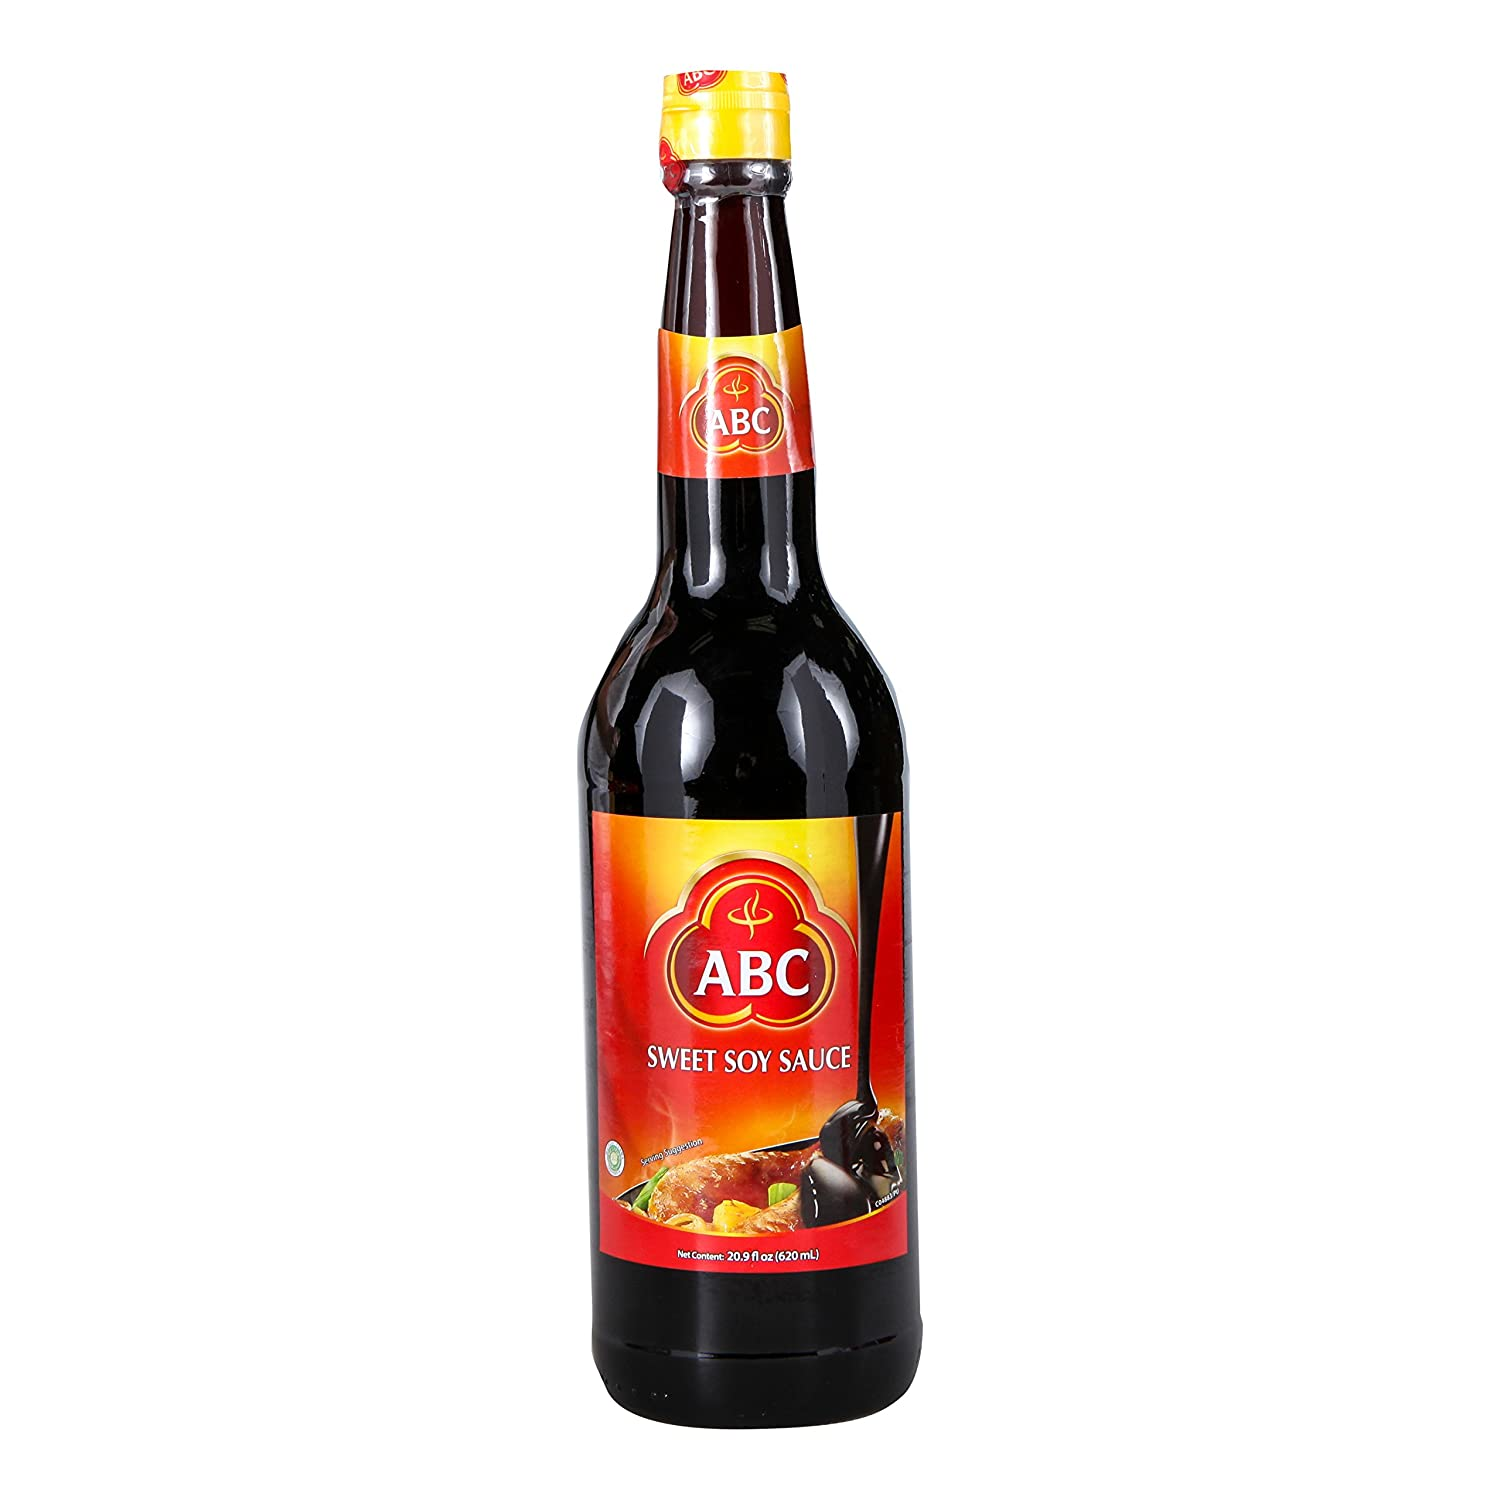 Amazon.com : ABC Kecap Manis Sweet Soy Sauce (20.9 ounce ...